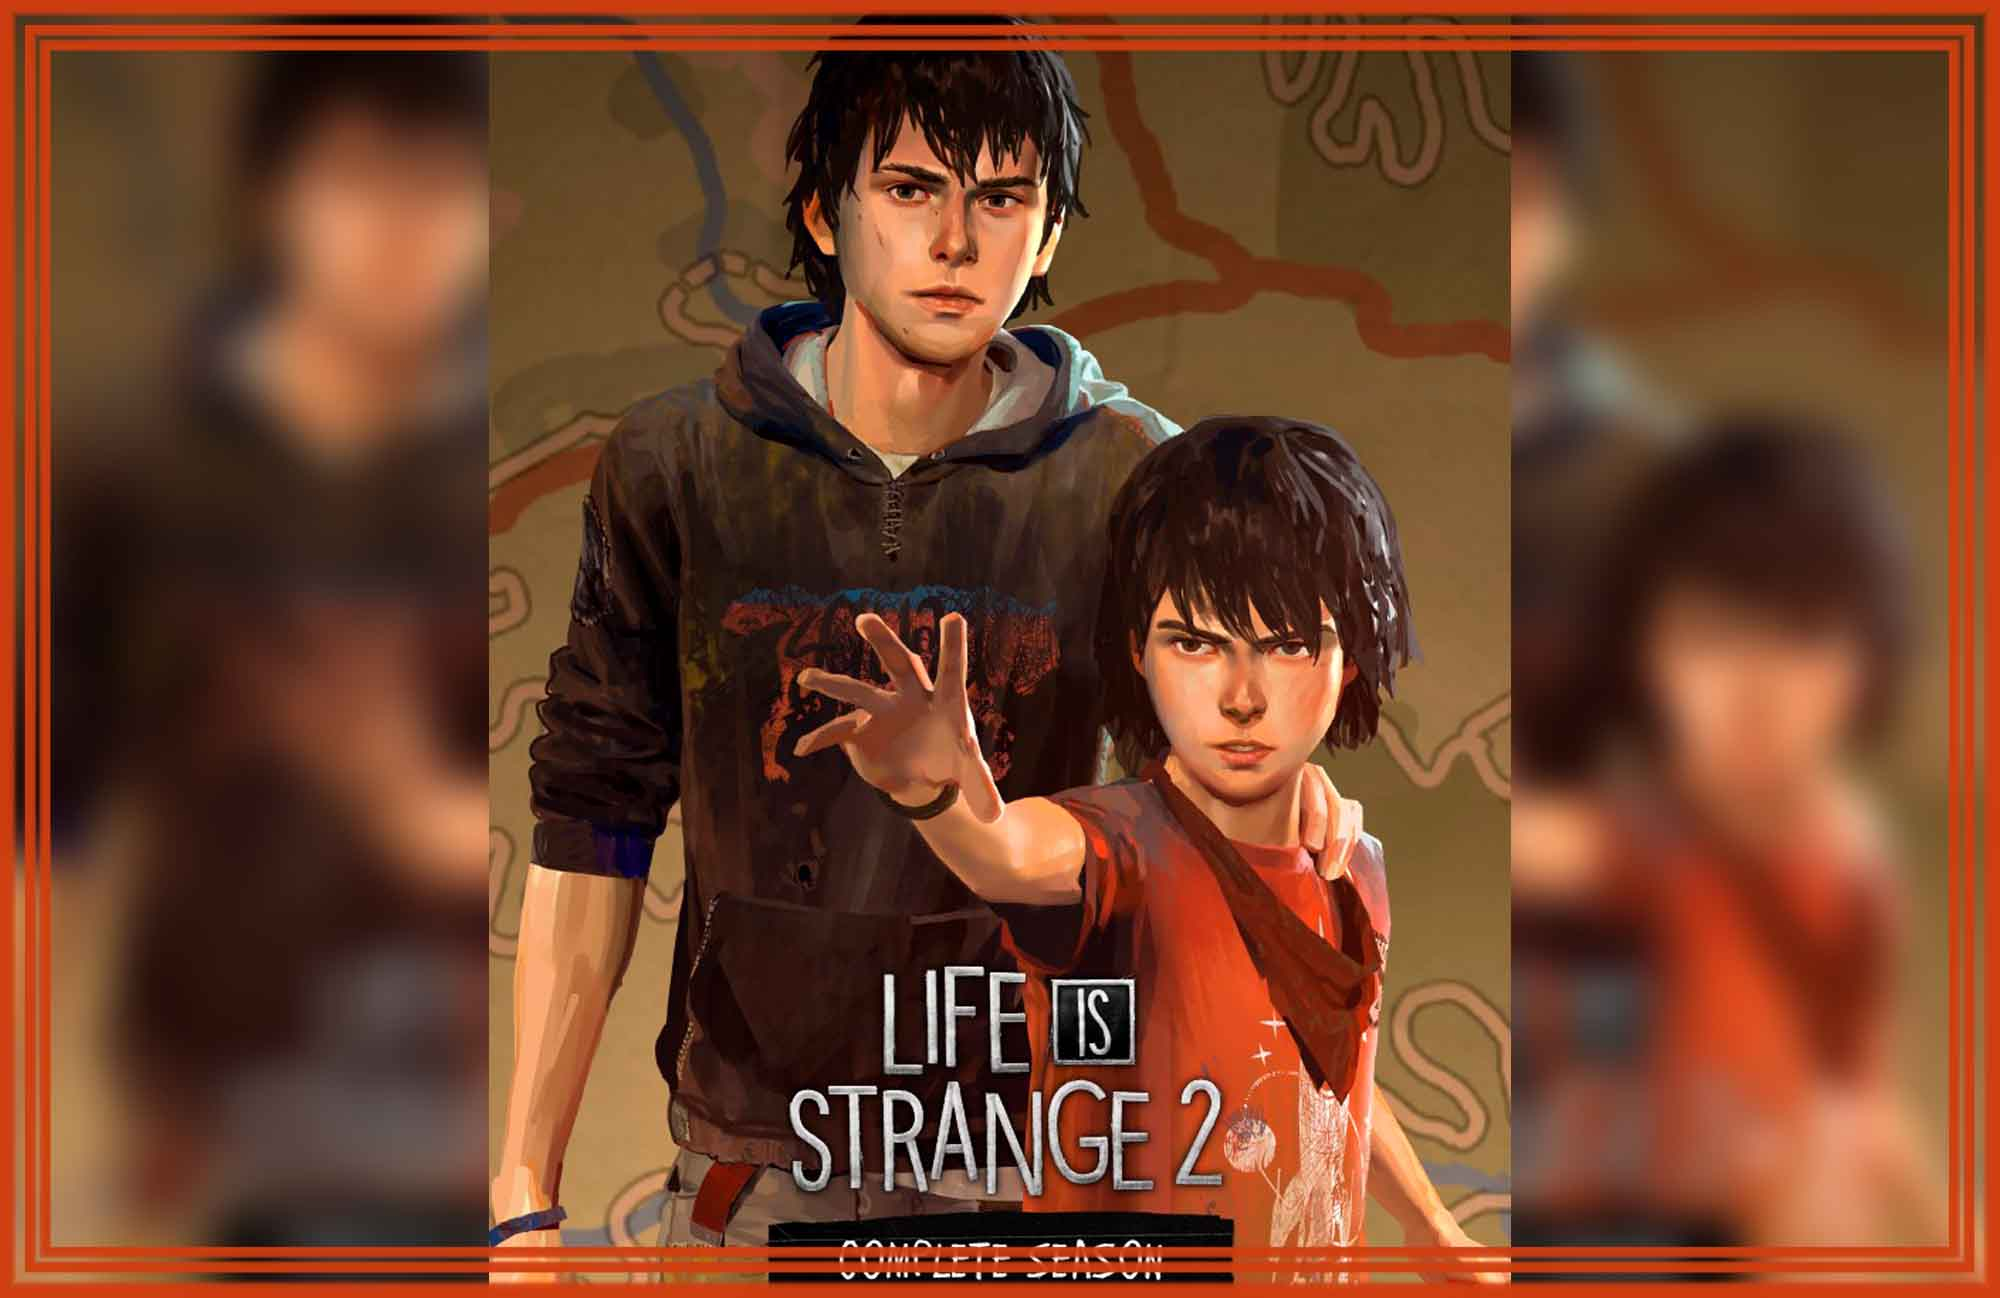 La demo de 'Life is Strange 2' ya está disponible para PC en la web de Square Enix